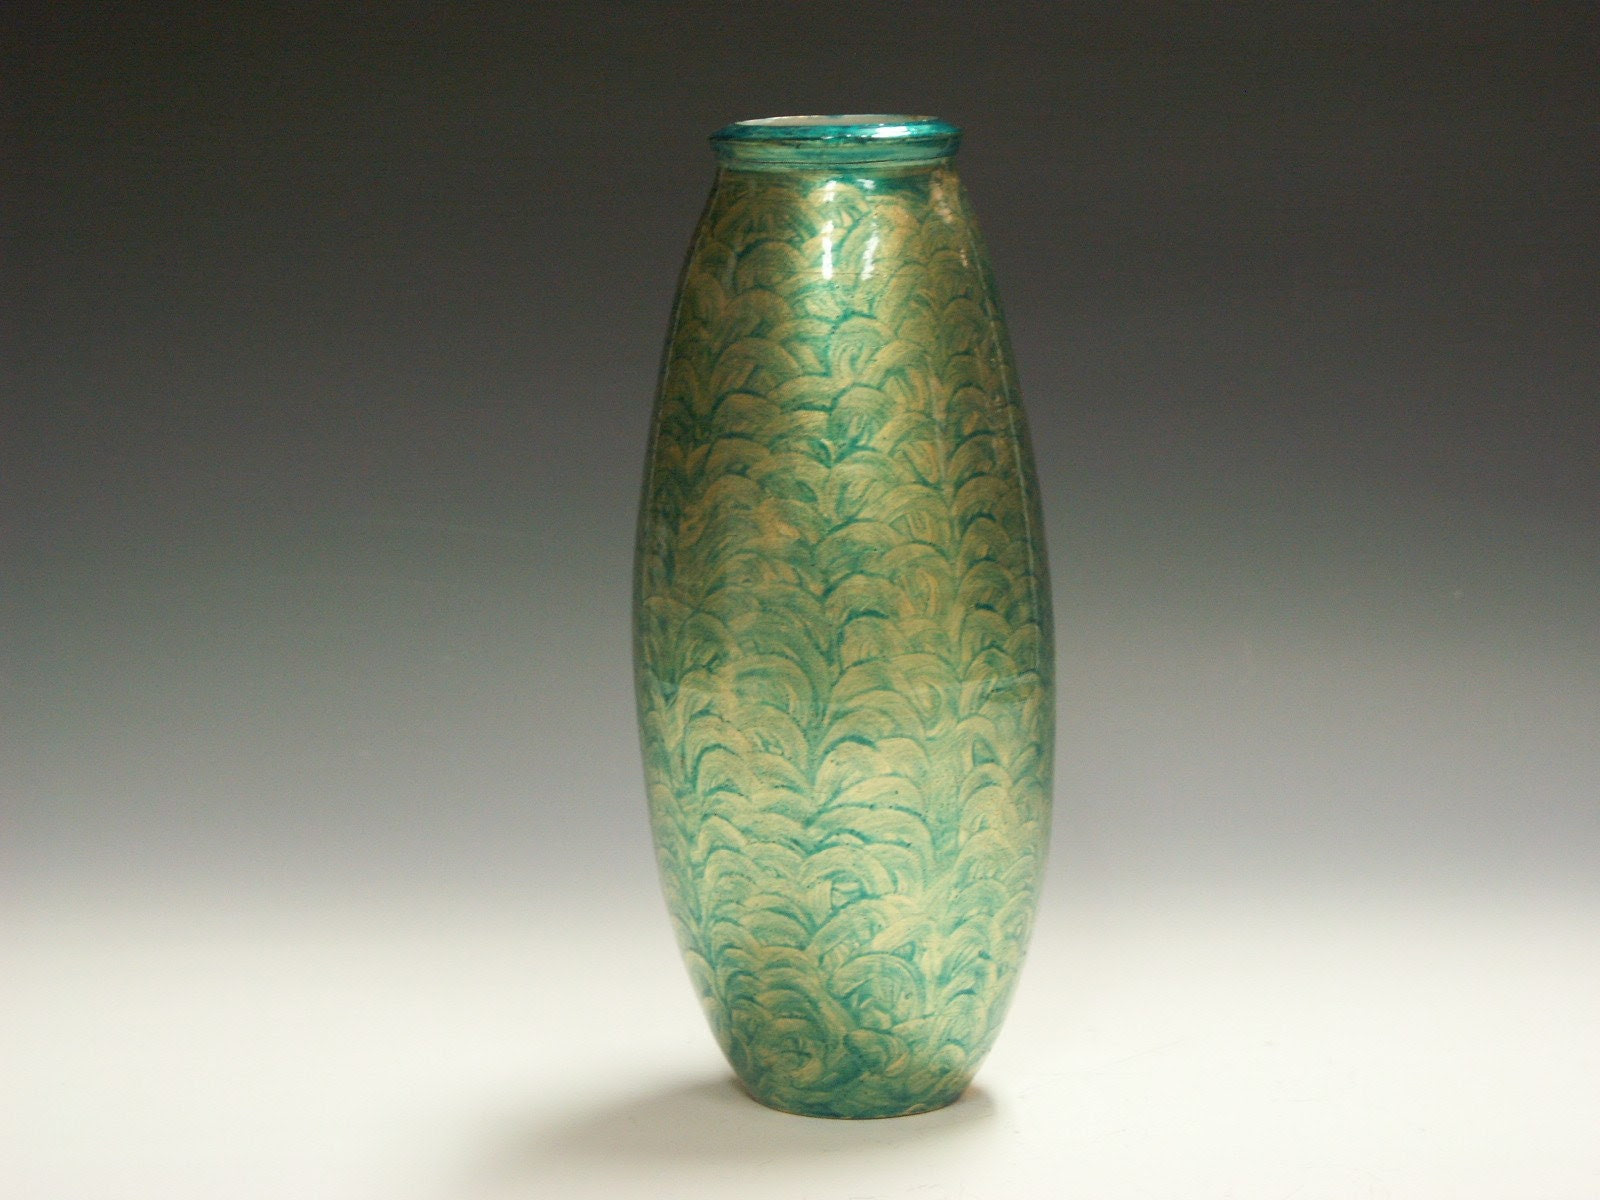 Porcelain guilded decorative vase